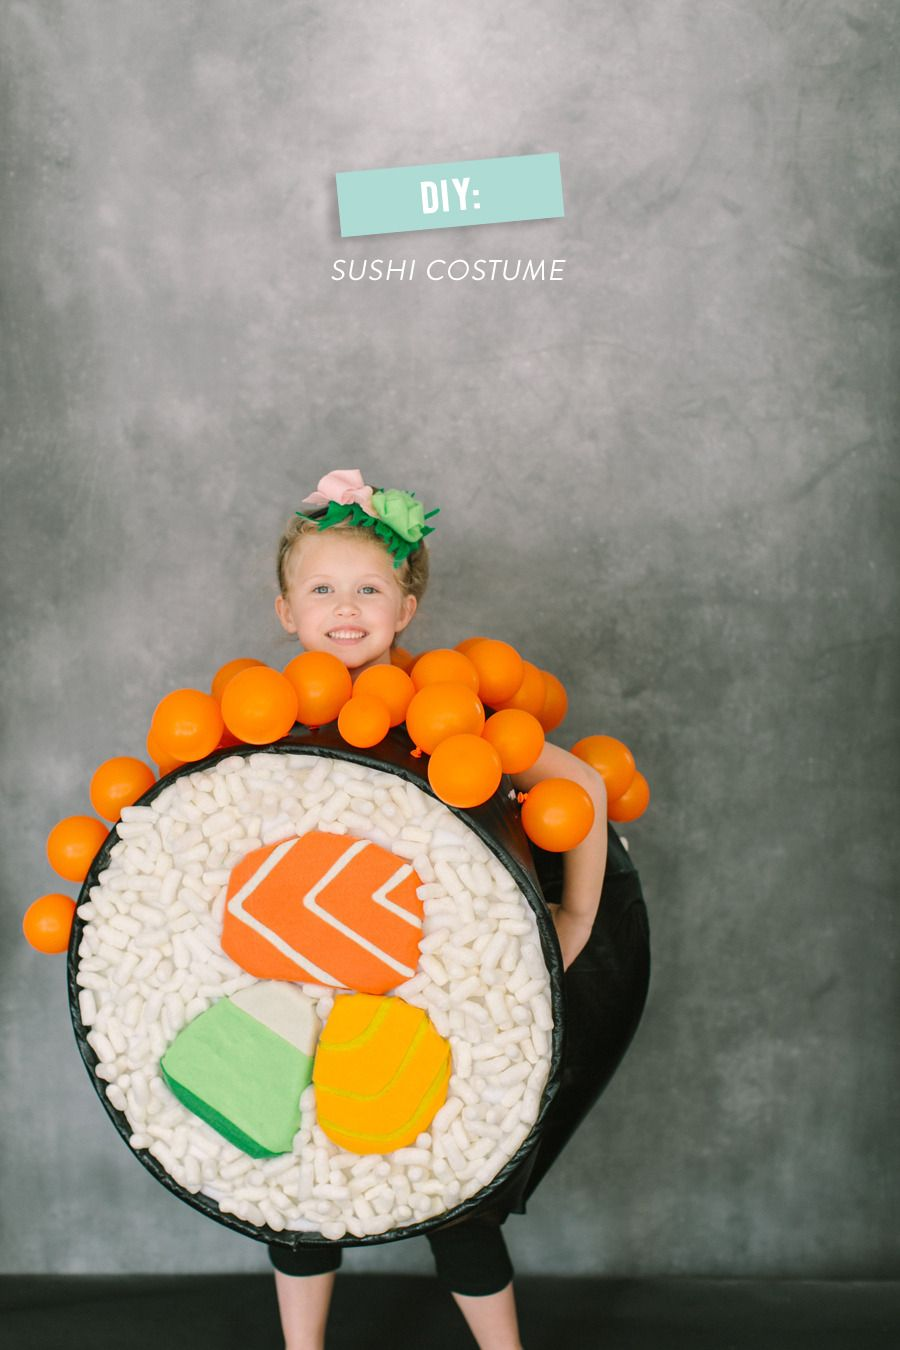 diy halloween costume: sushi roll | diy + how-to projects